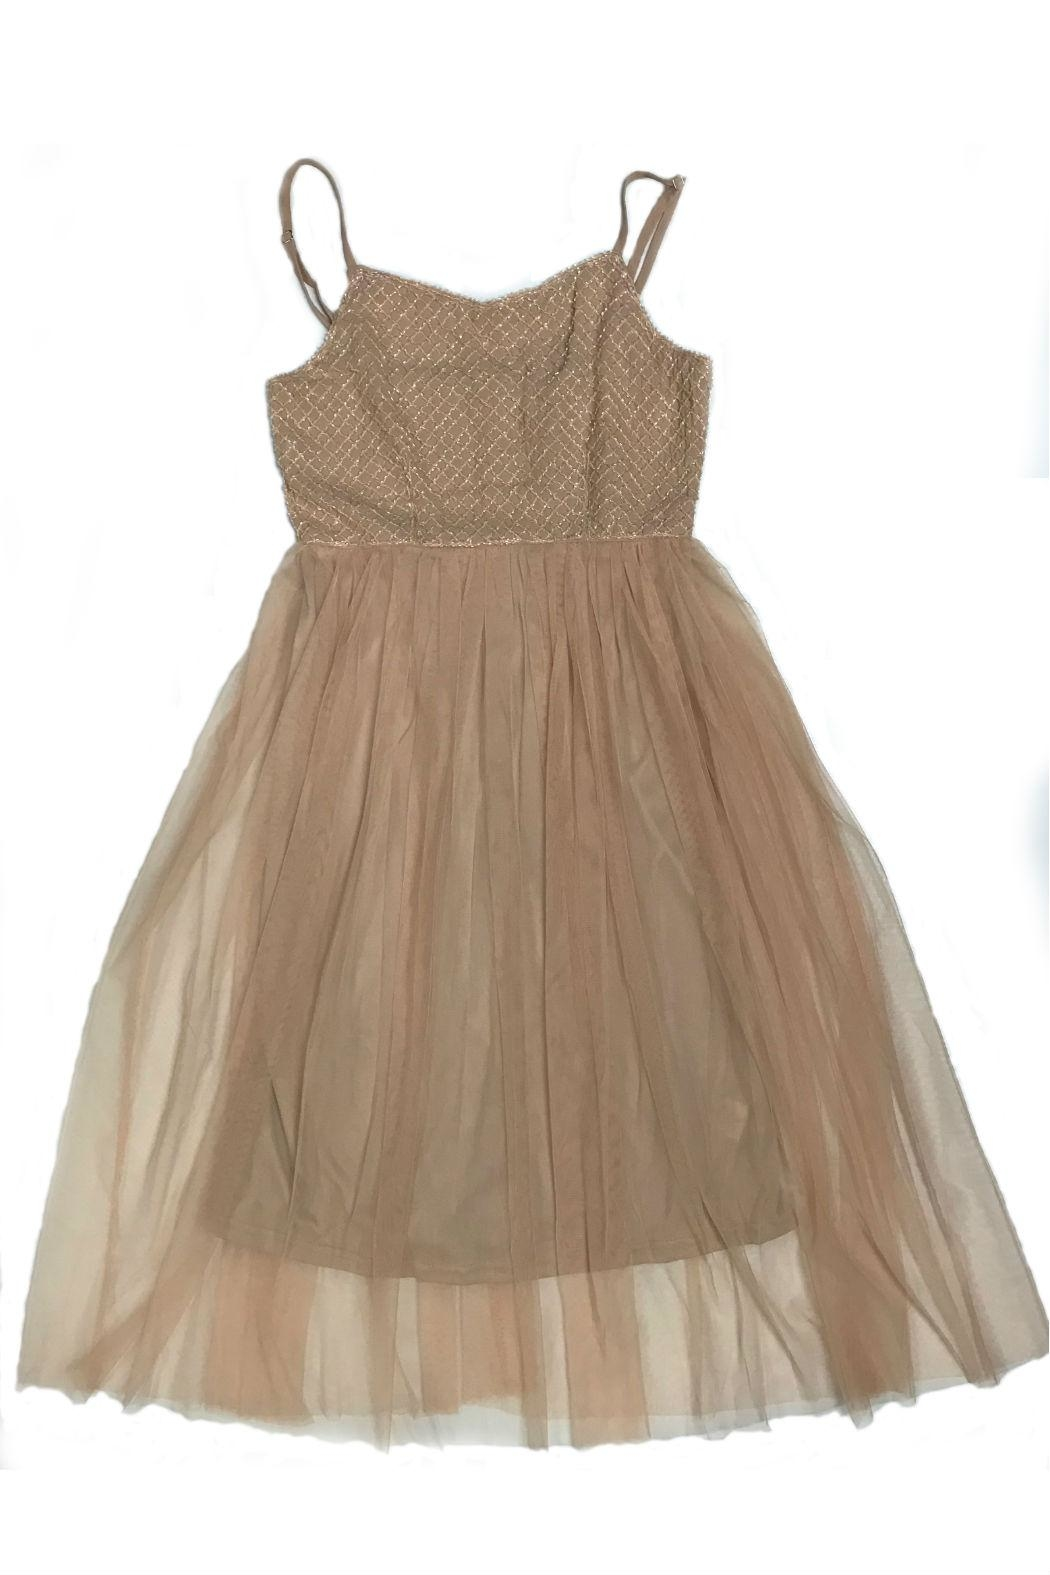 Molly Bracken Tulle Cocktail Dress - Front Cropped Image